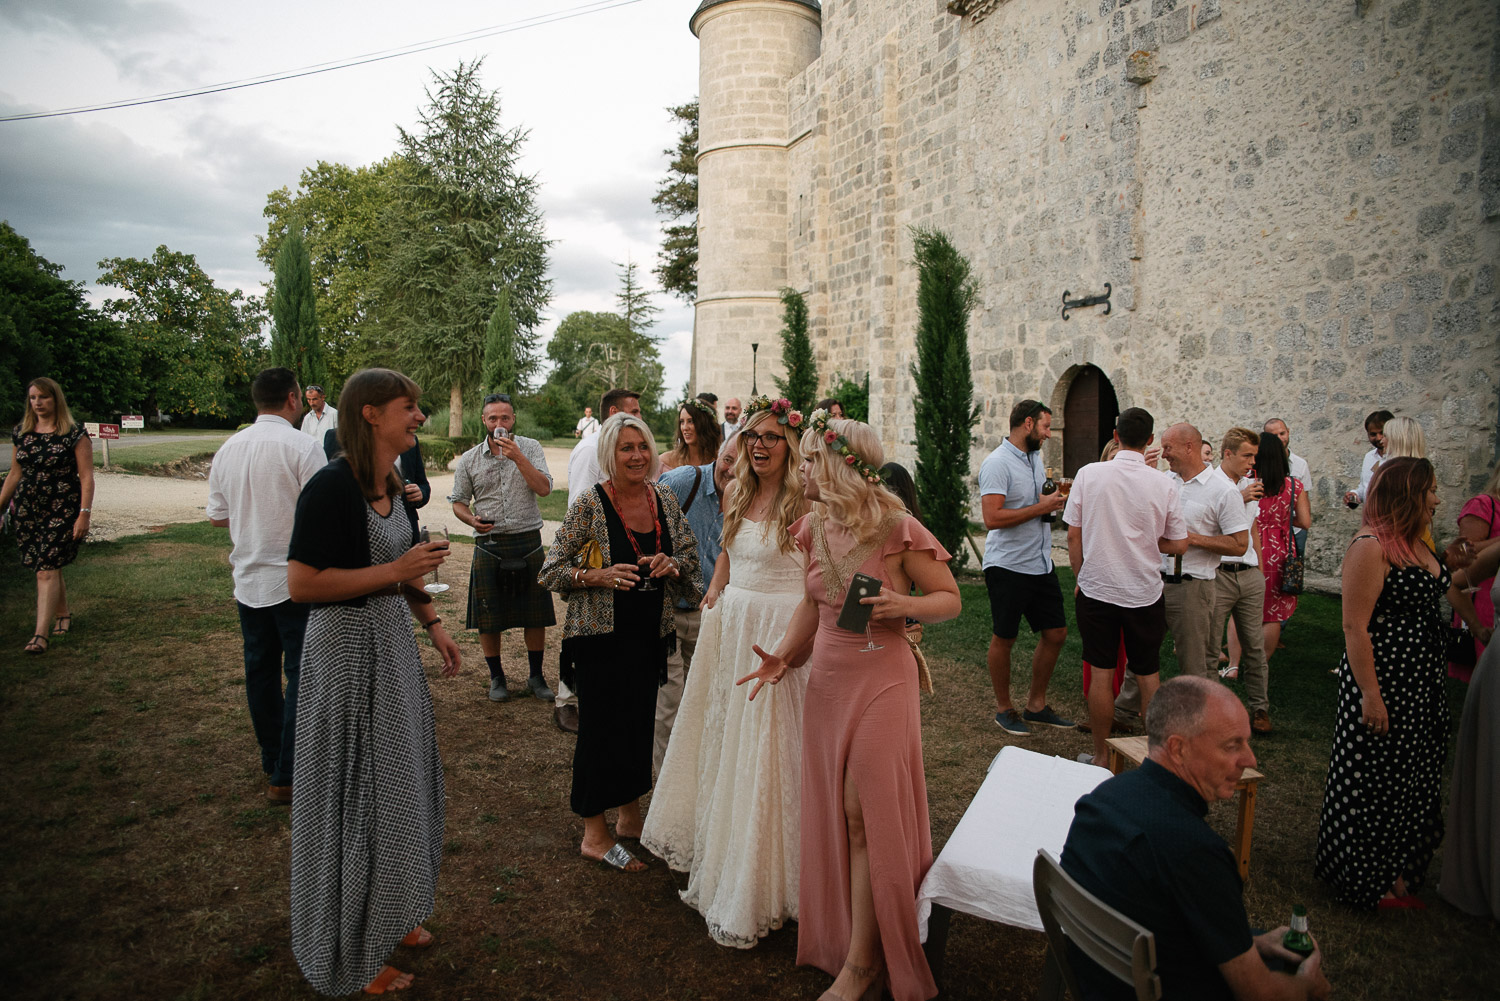 chateau_de_lisse_gers_wedding_katy_webb_photography_france_UK120